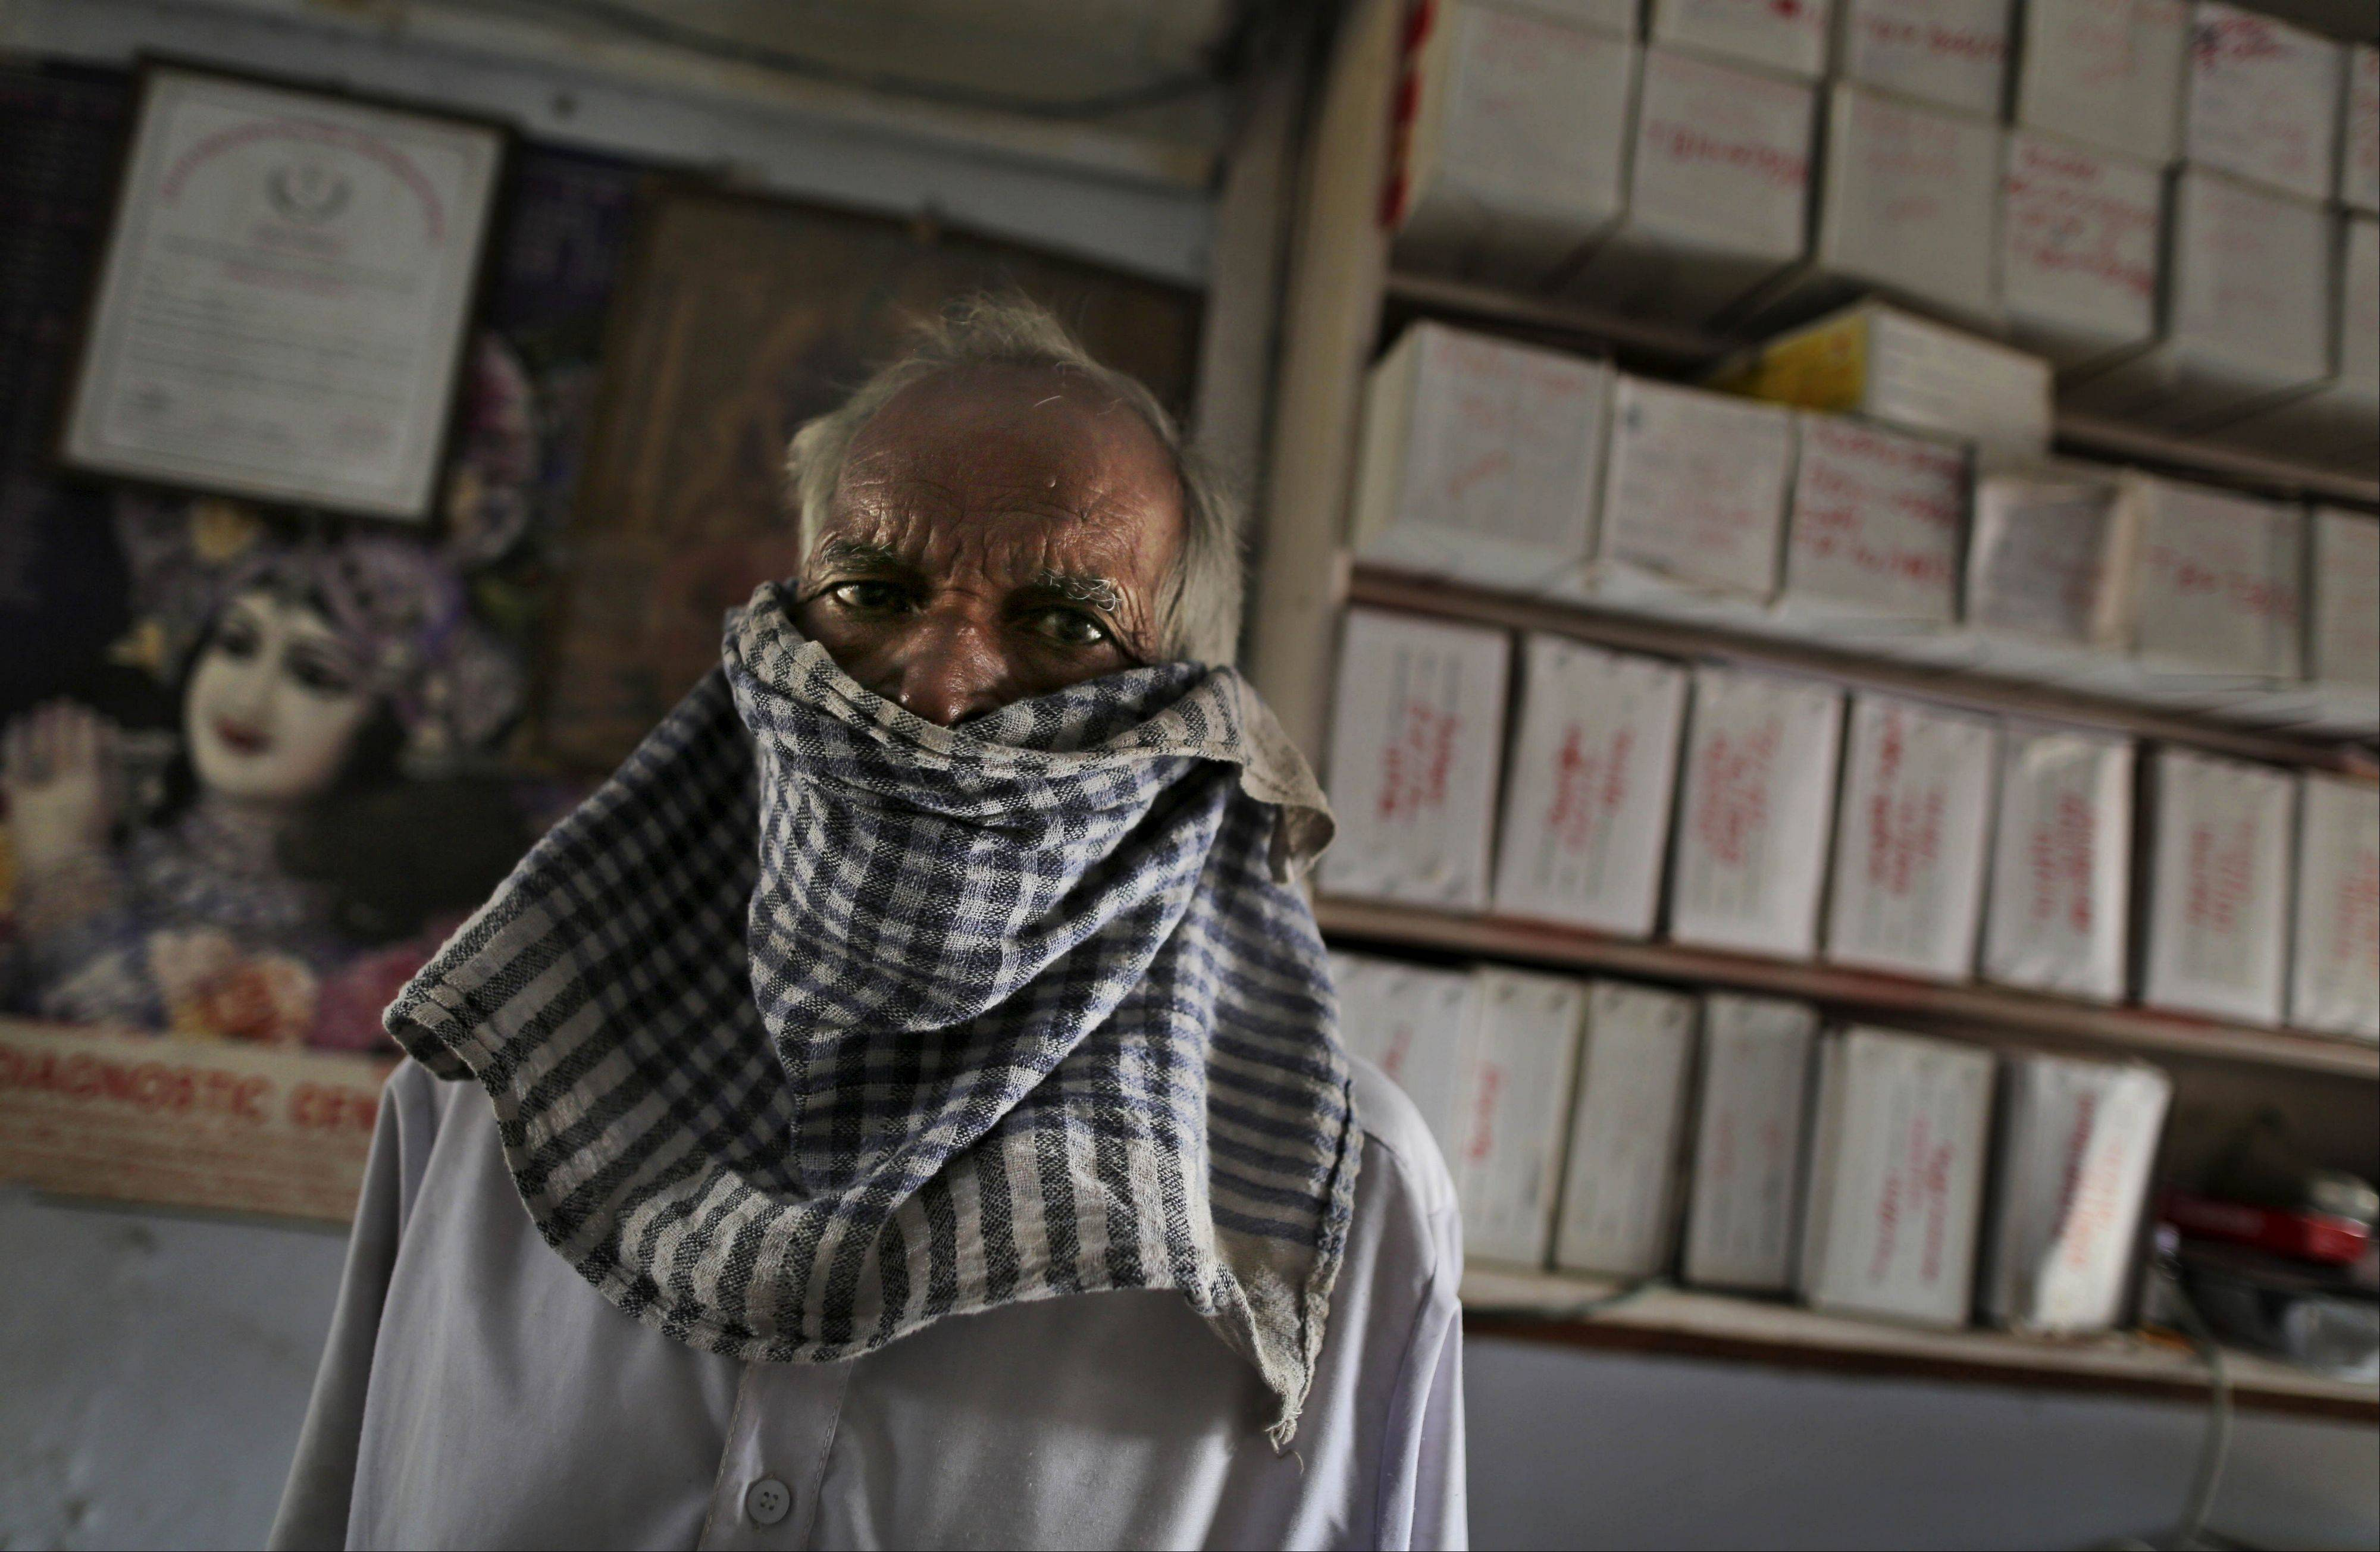 Associated Press/Oct. 22, 2012A tuberculosis patient, wearing a cloth over his mouth, waits in front of boxes of medication at an Operation ASHA program center in New Delhi.